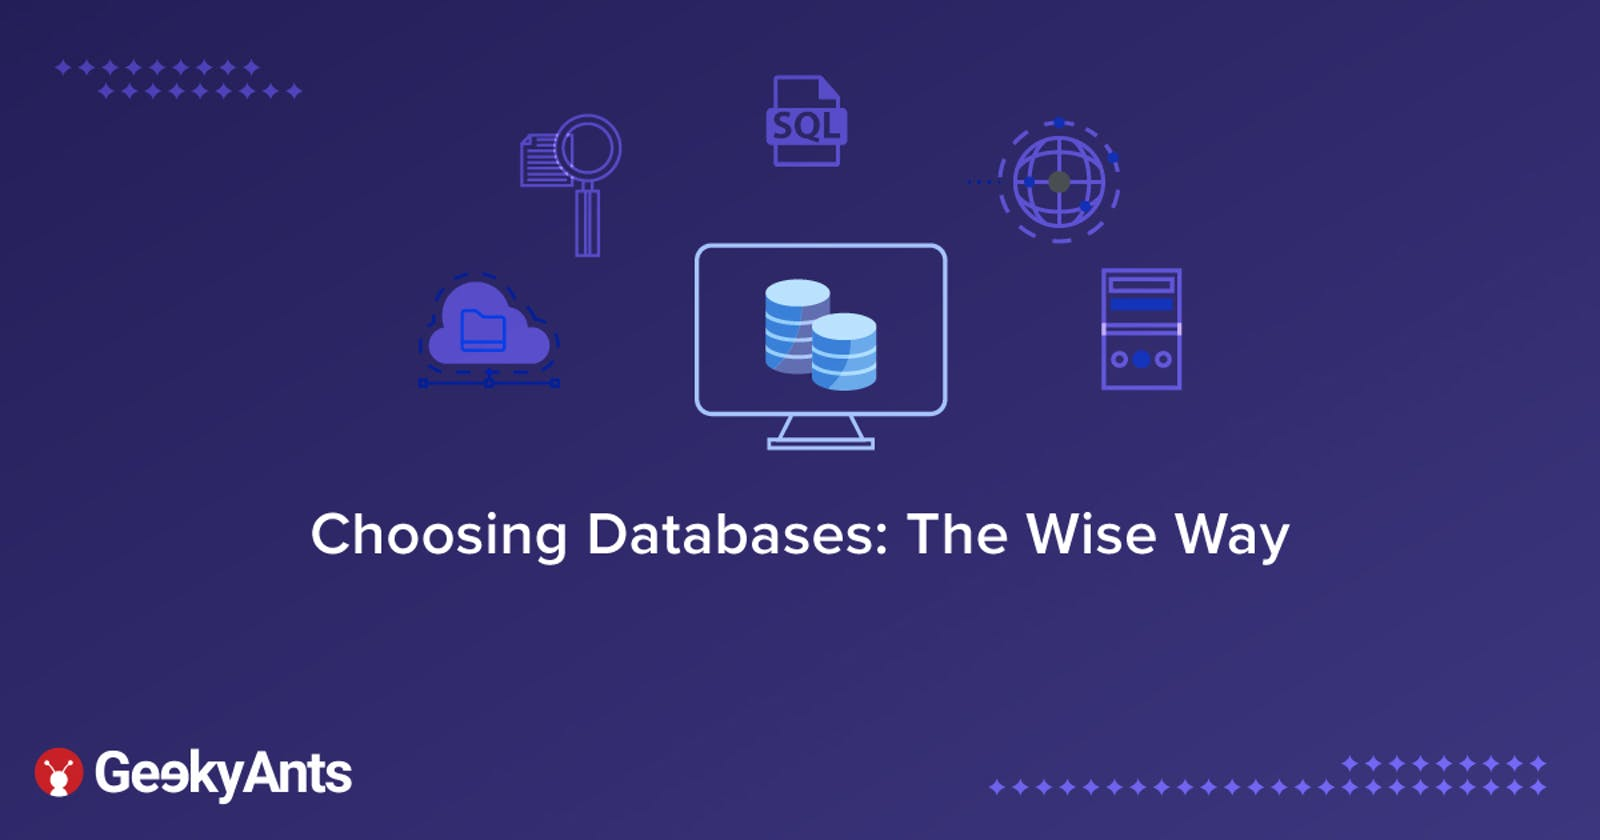 Choosing Databases: The Wise Way